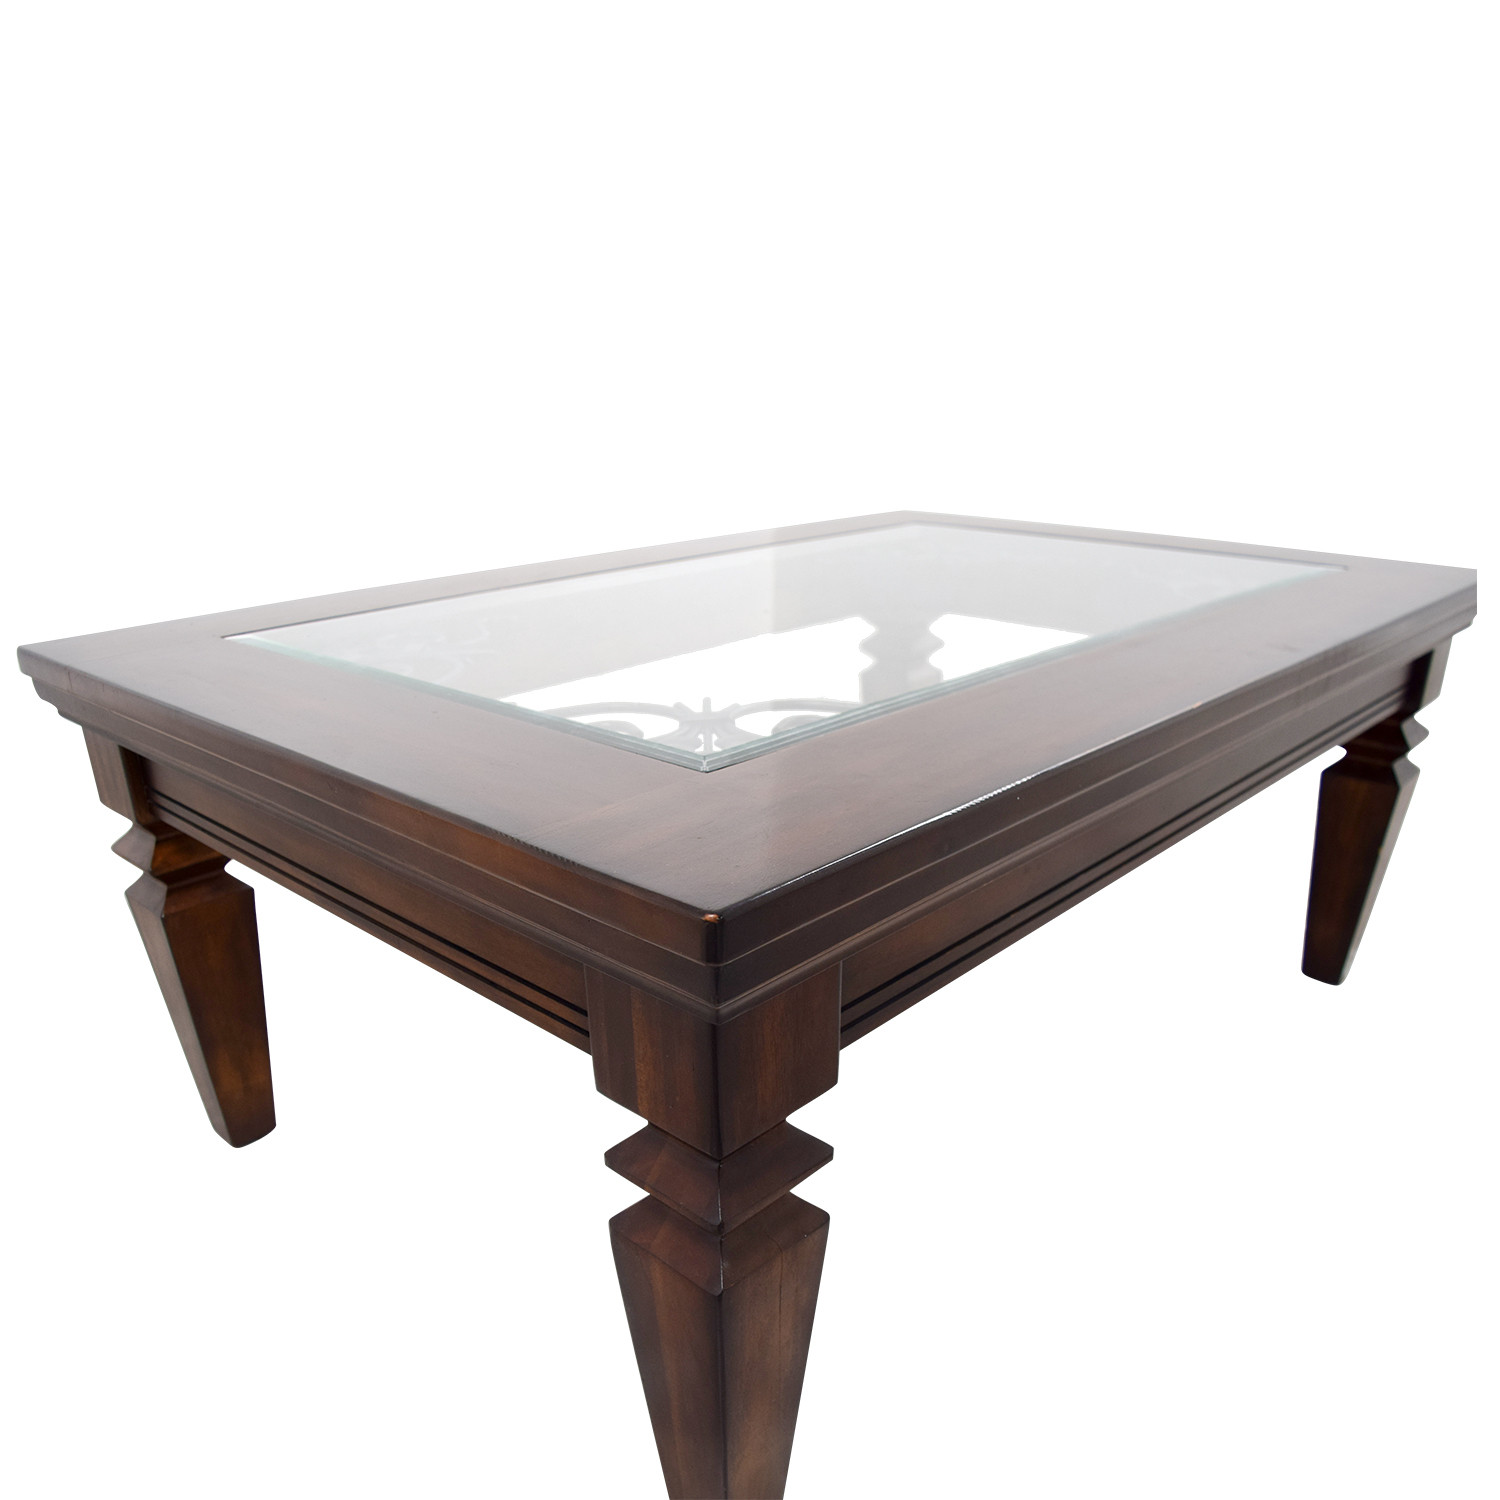 Best ideas about Wood And Glass Coffee Table . Save or Pin OFF Wood Metal Scroll and Glass Coffee Table Tables Now.